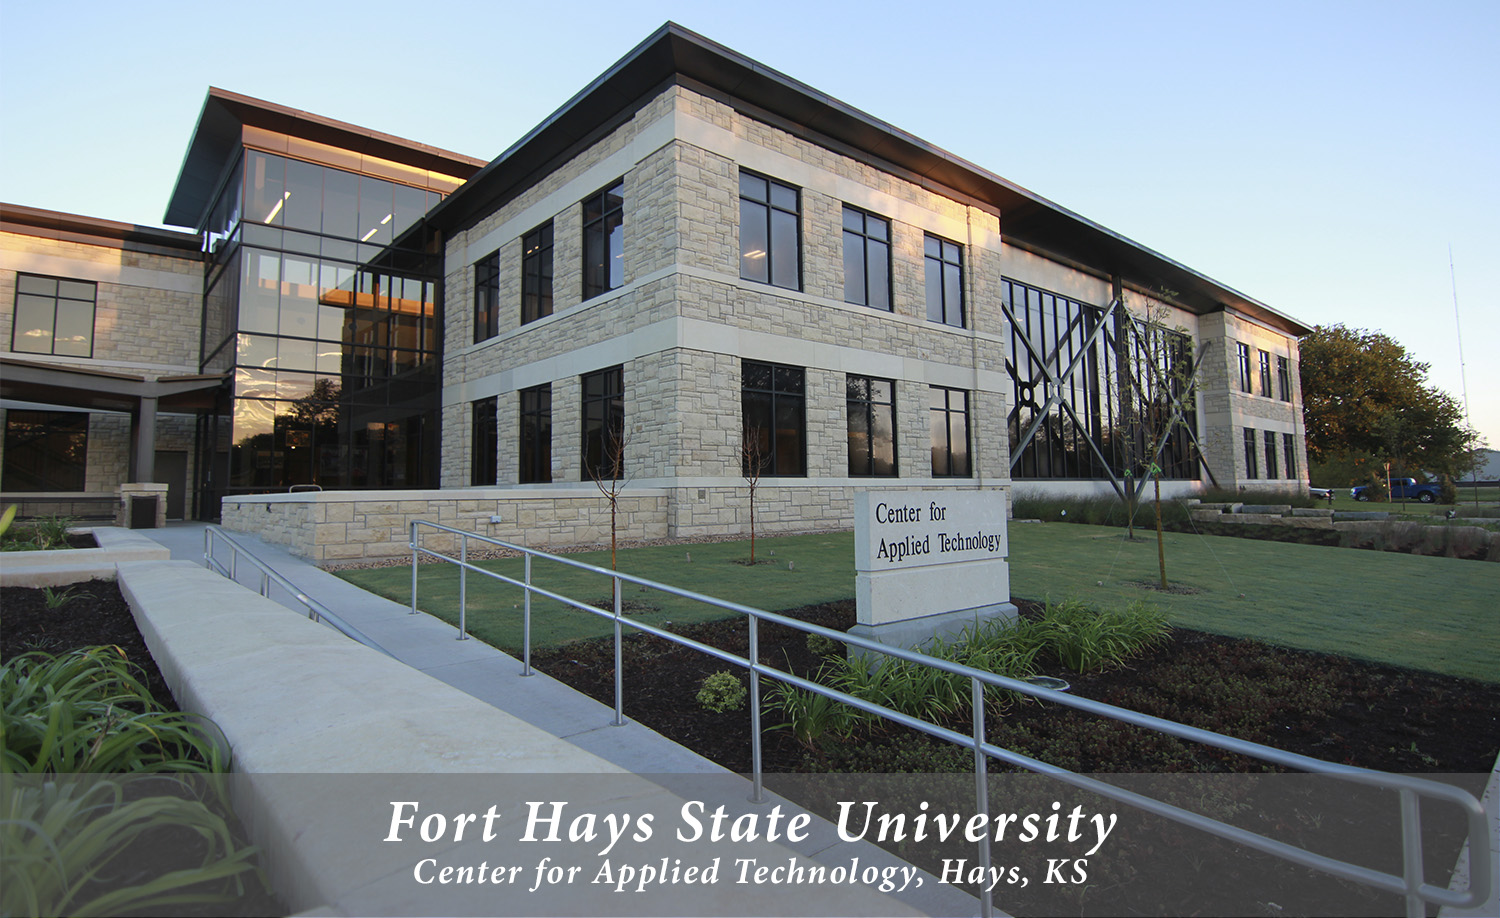 FHSU Institute of Applied Technology with Text.jpg